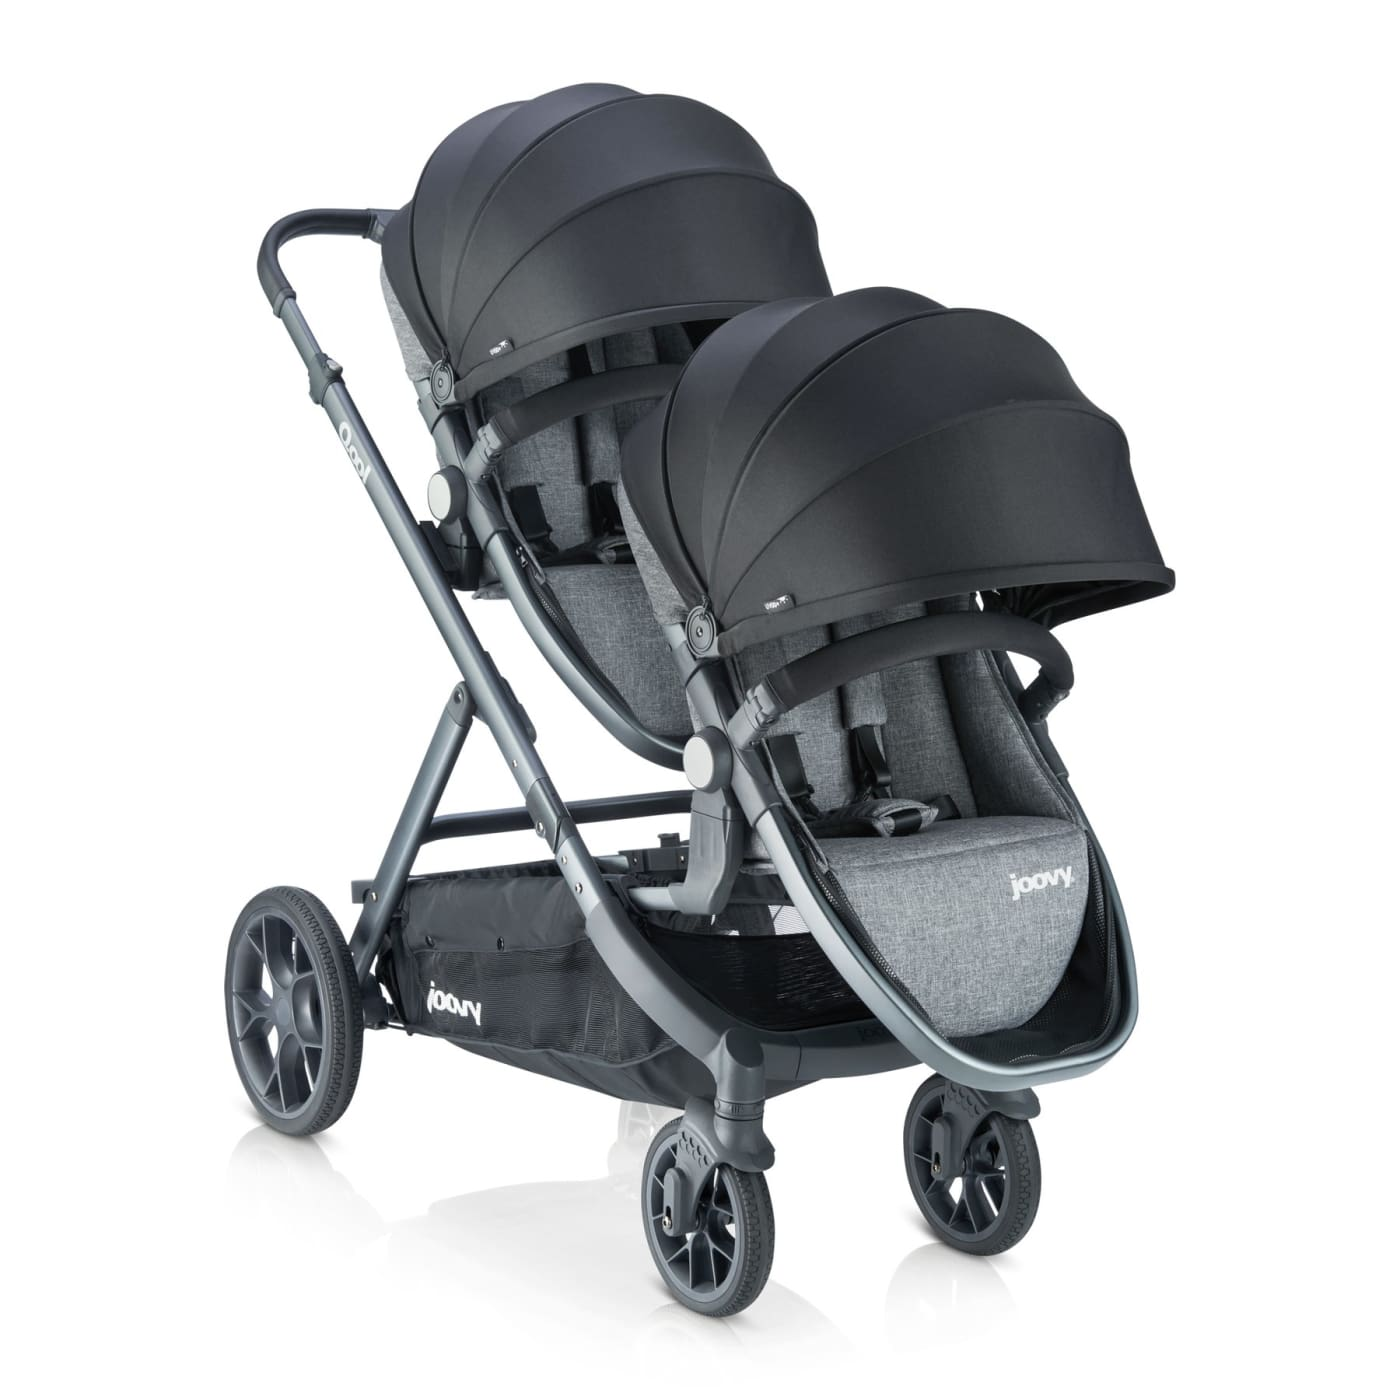 Joovy Qool Second Seat - Black Melange - Black Melange - PRAMS & STROLLERS - TODDLER SEATS/CONVERSION KITS